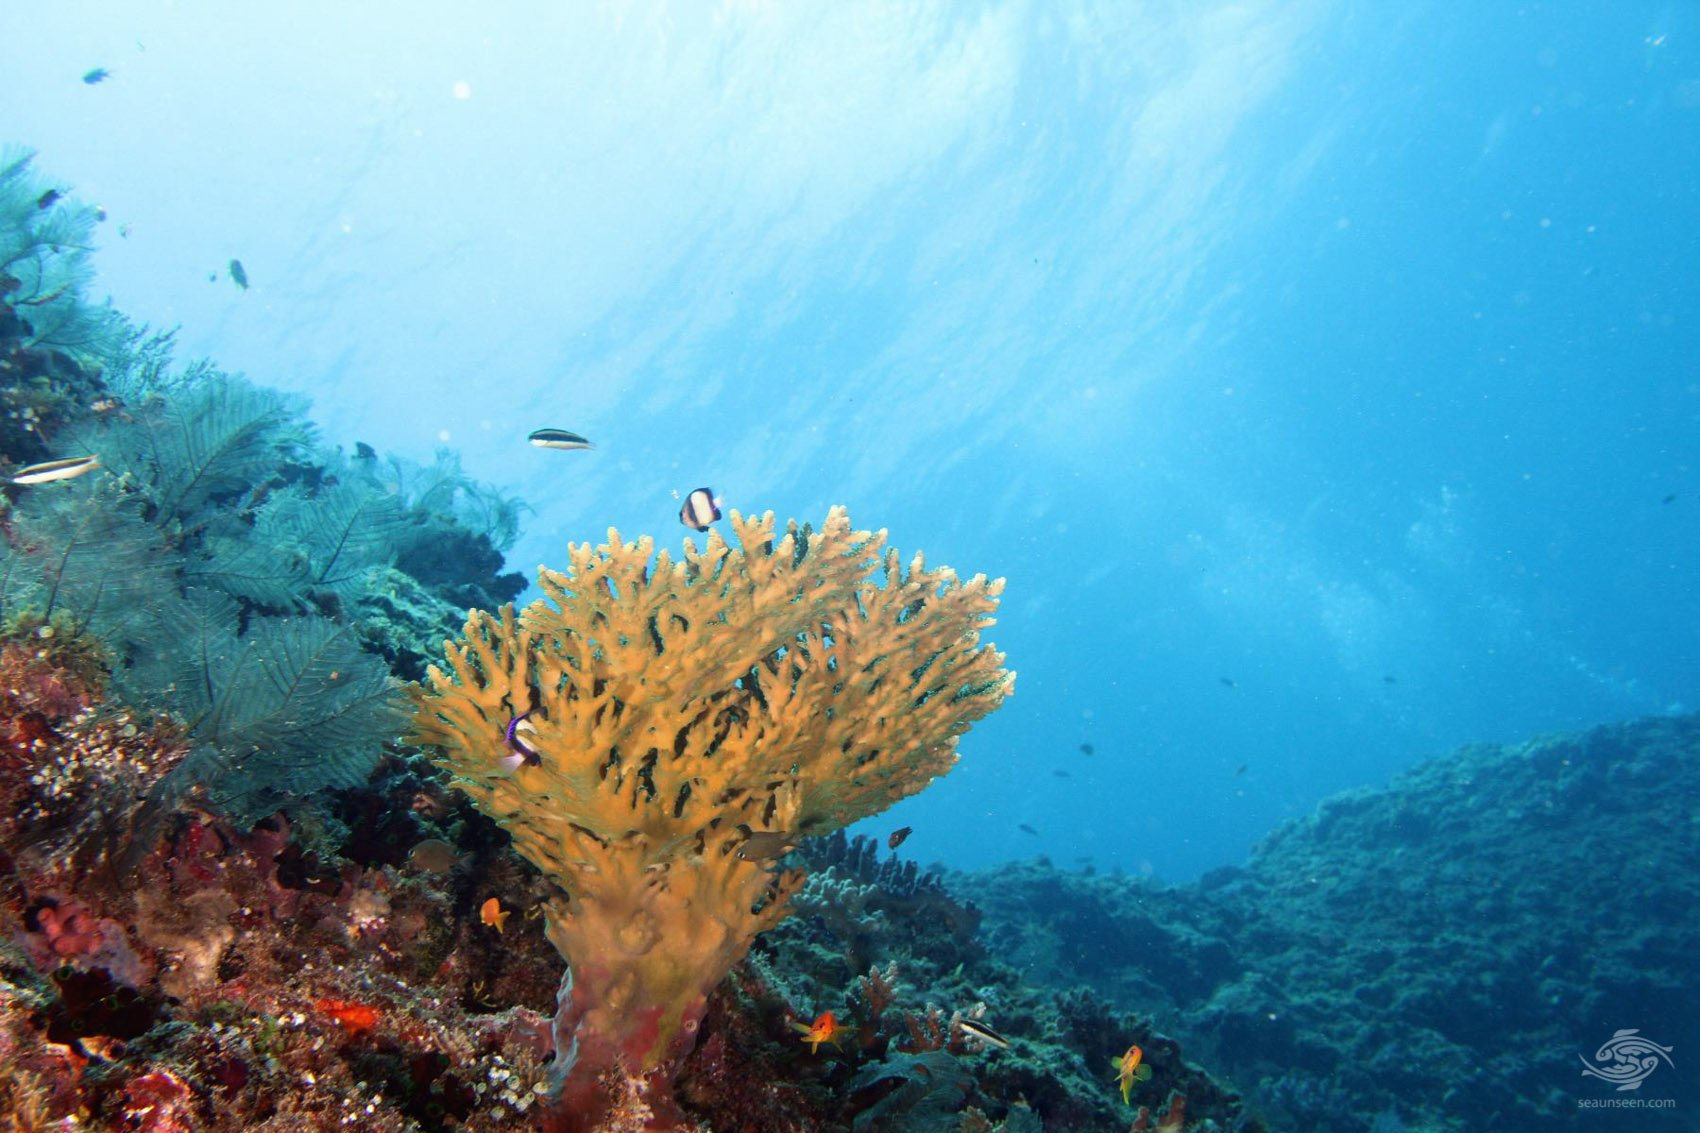 Dindini wall-Mafia Island dive sites